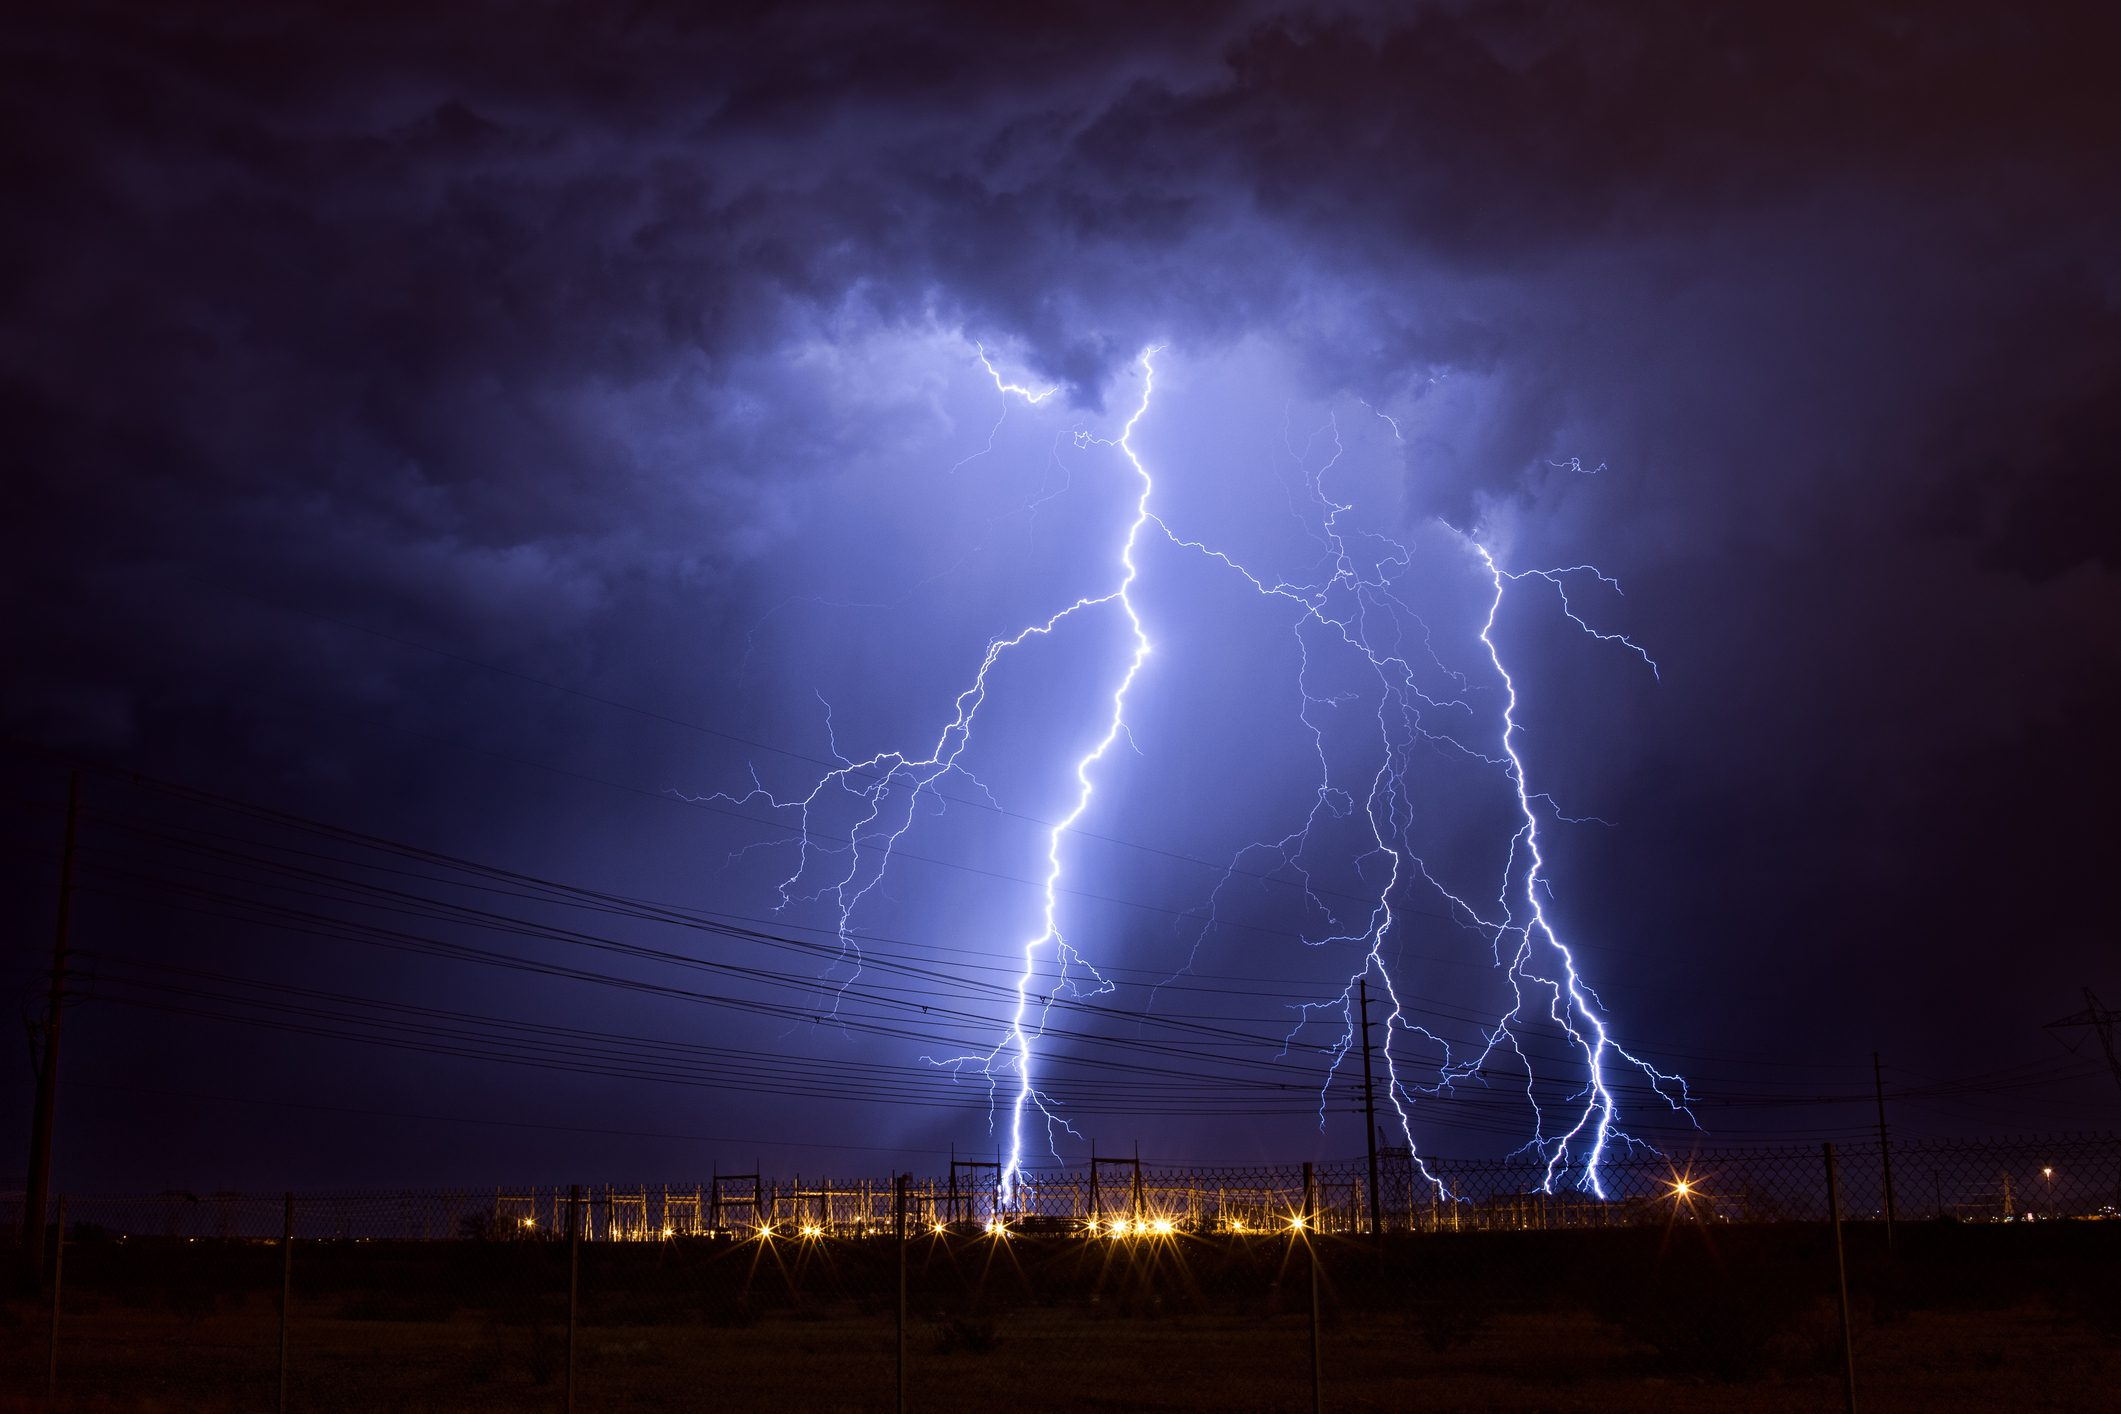 Lightning strikes an electrical substation in the city of Phoenix.